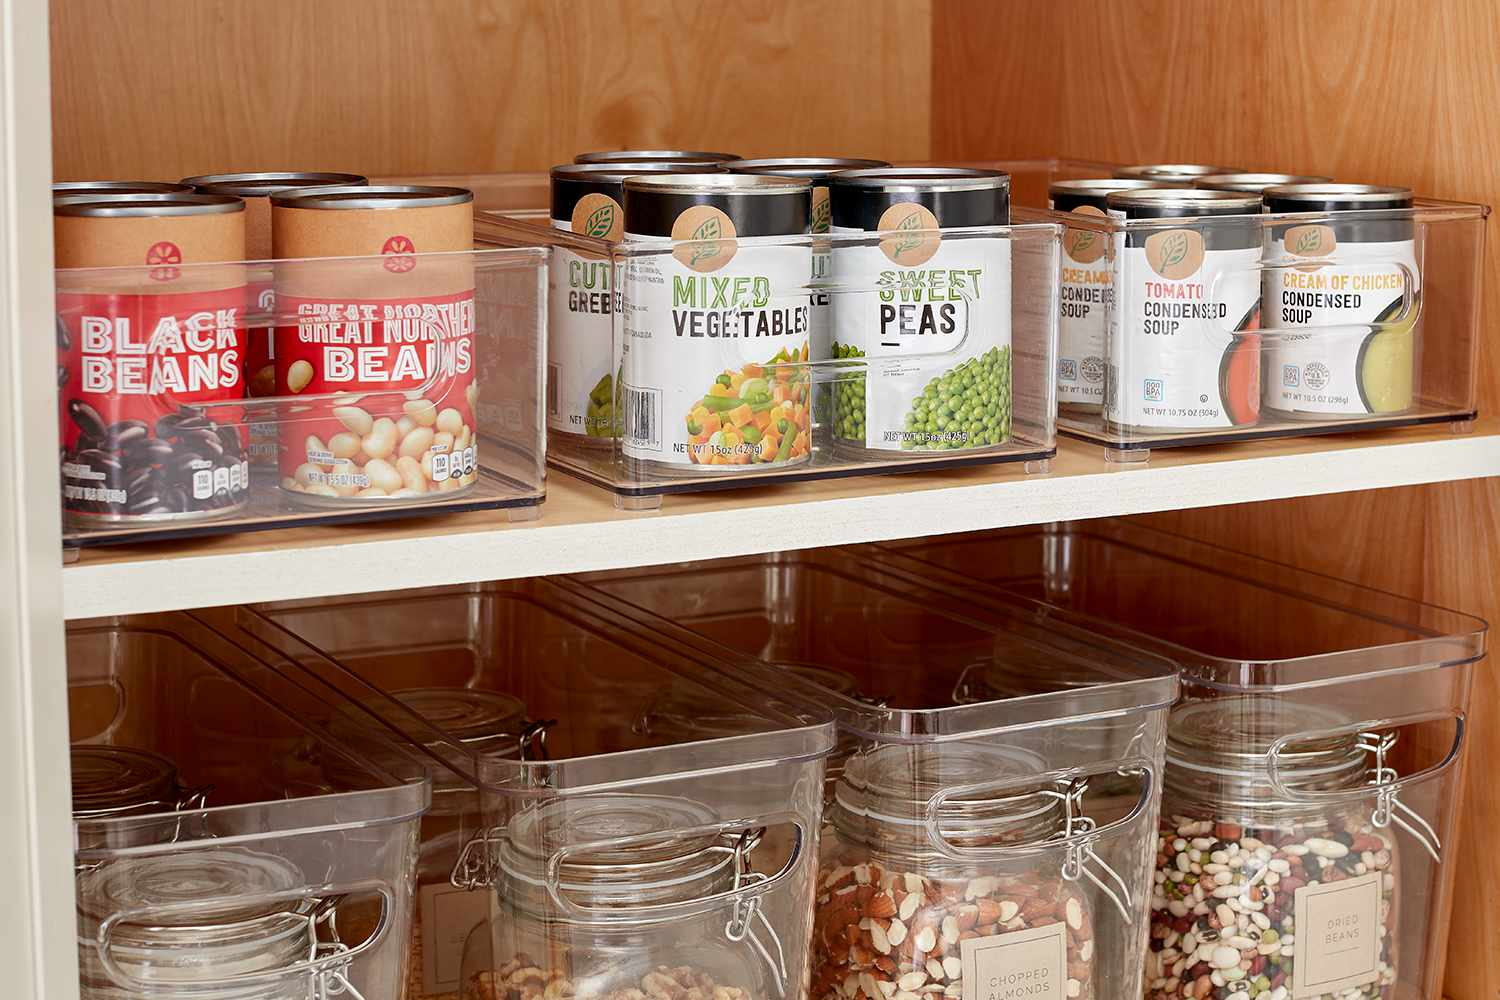 Canned goods in kitchen pantry